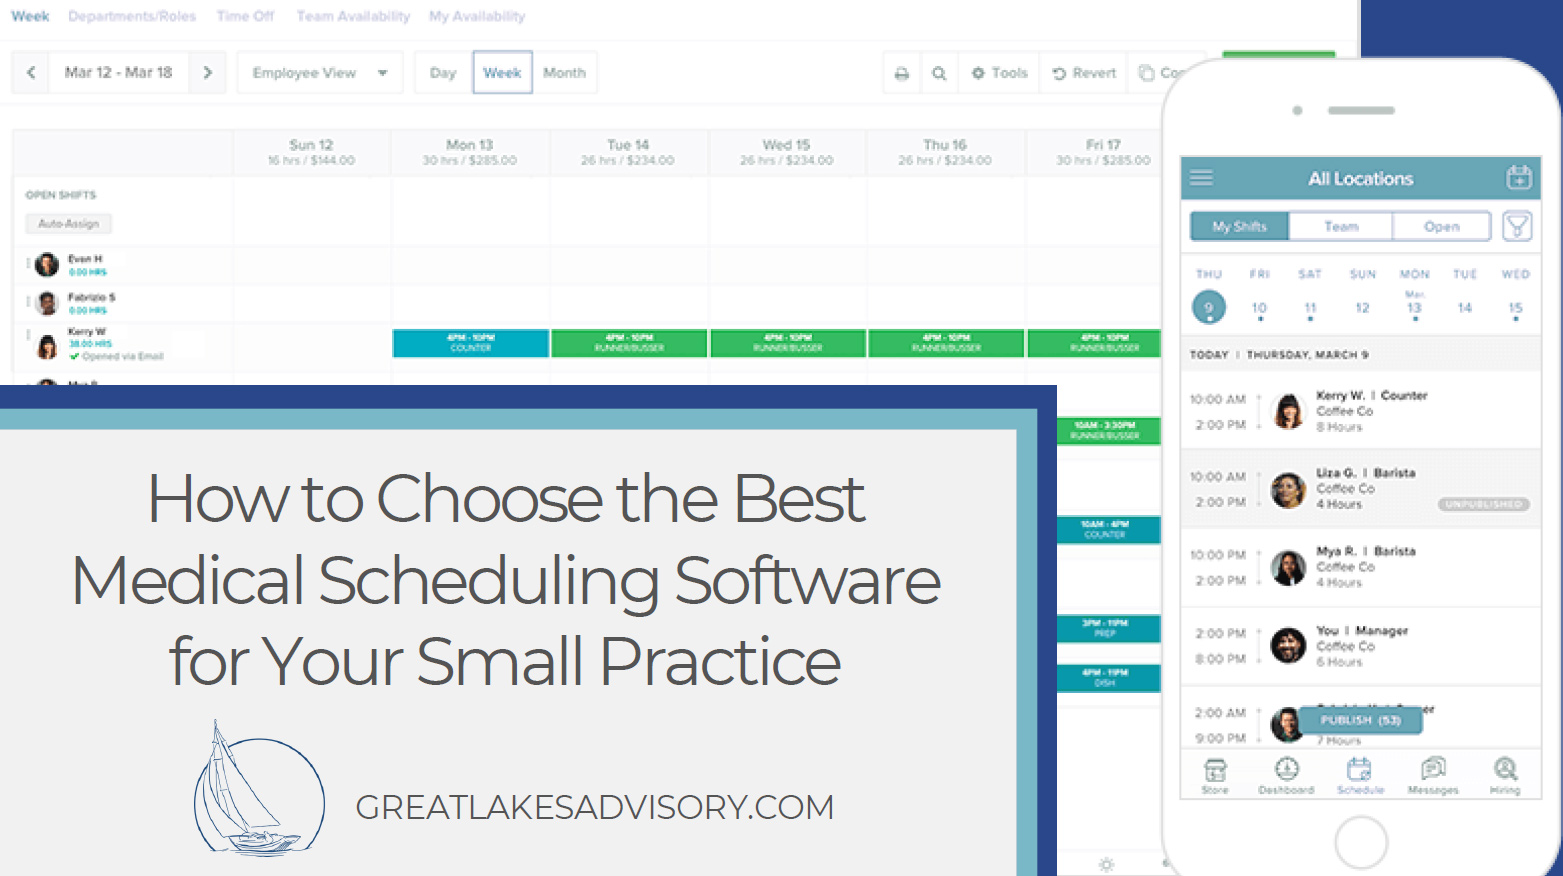 How to Choose the Best Medical Scheduling Software for Your Small Practice